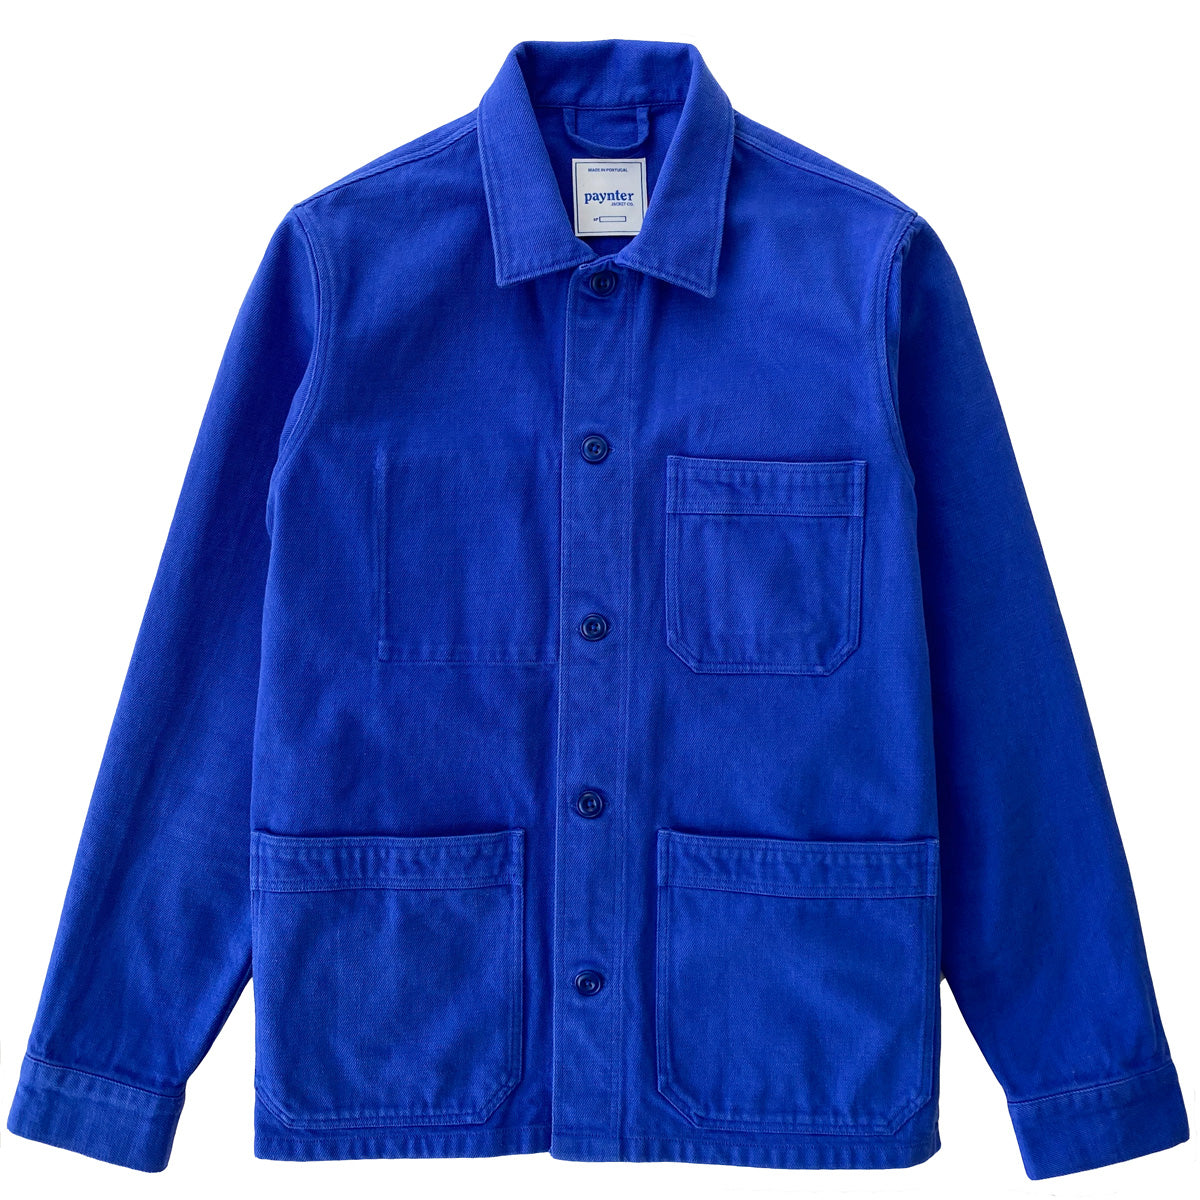 Paynter Jacket Co's Batch No.3.5 - The NHYES Jacket made exclusively in Bill Cunningham Blue. Limited Edition.